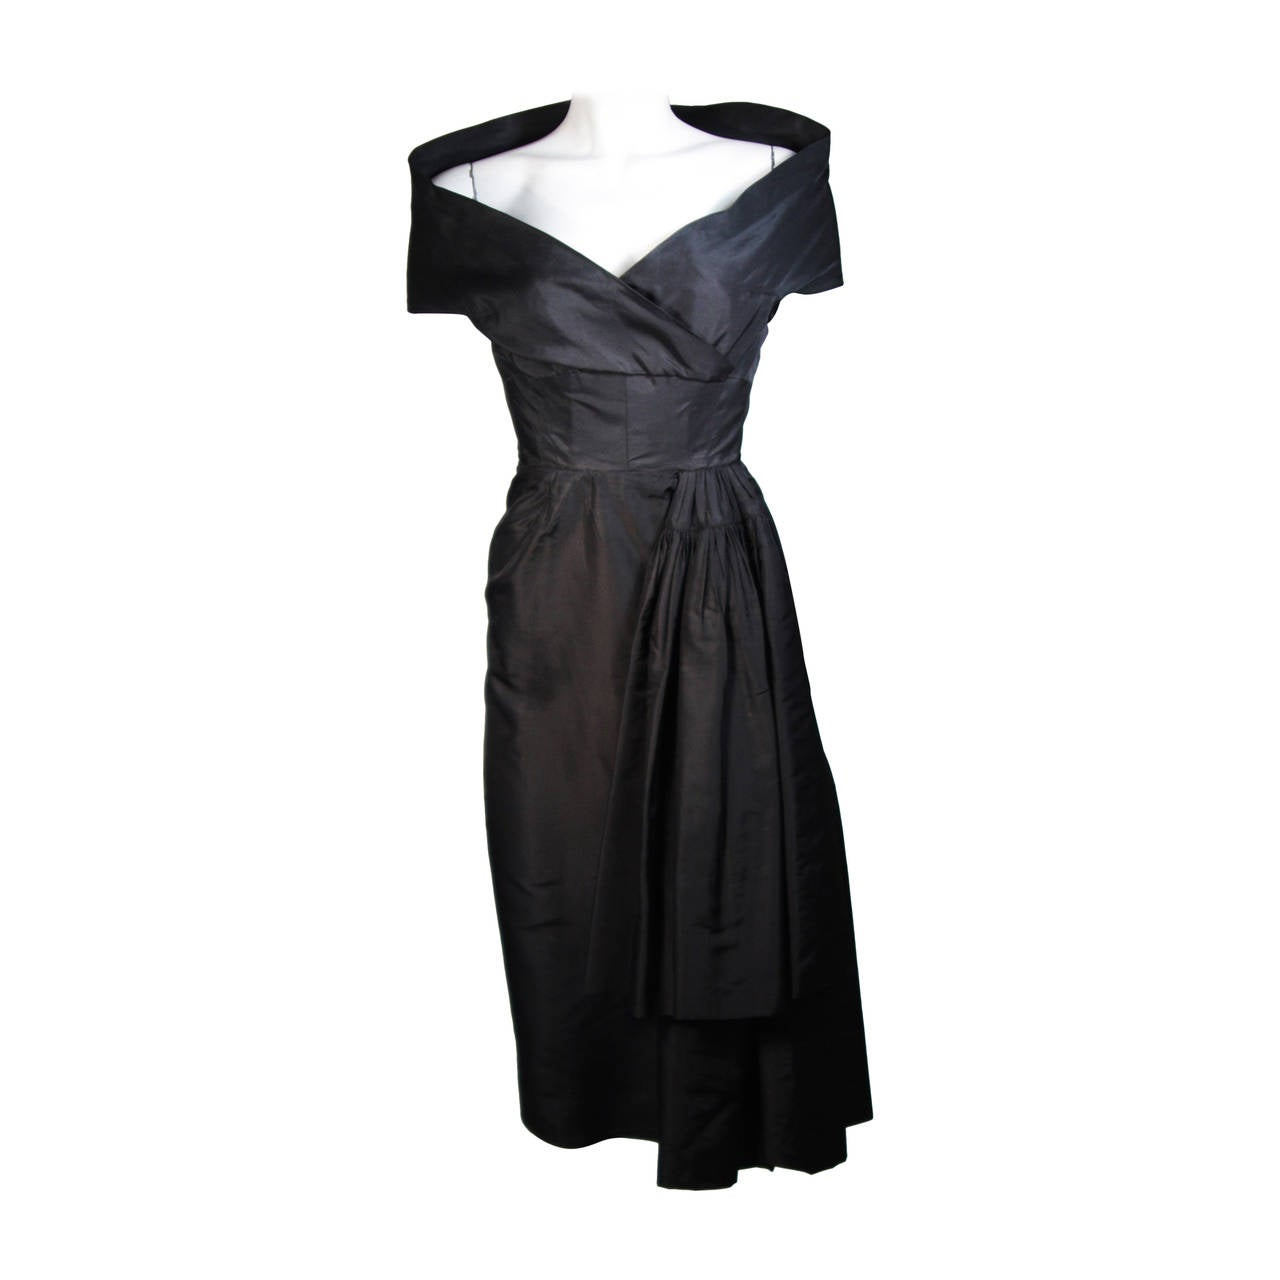 Ceil Chapman Black Cocktail Dress with Draped Detail Size Small 1